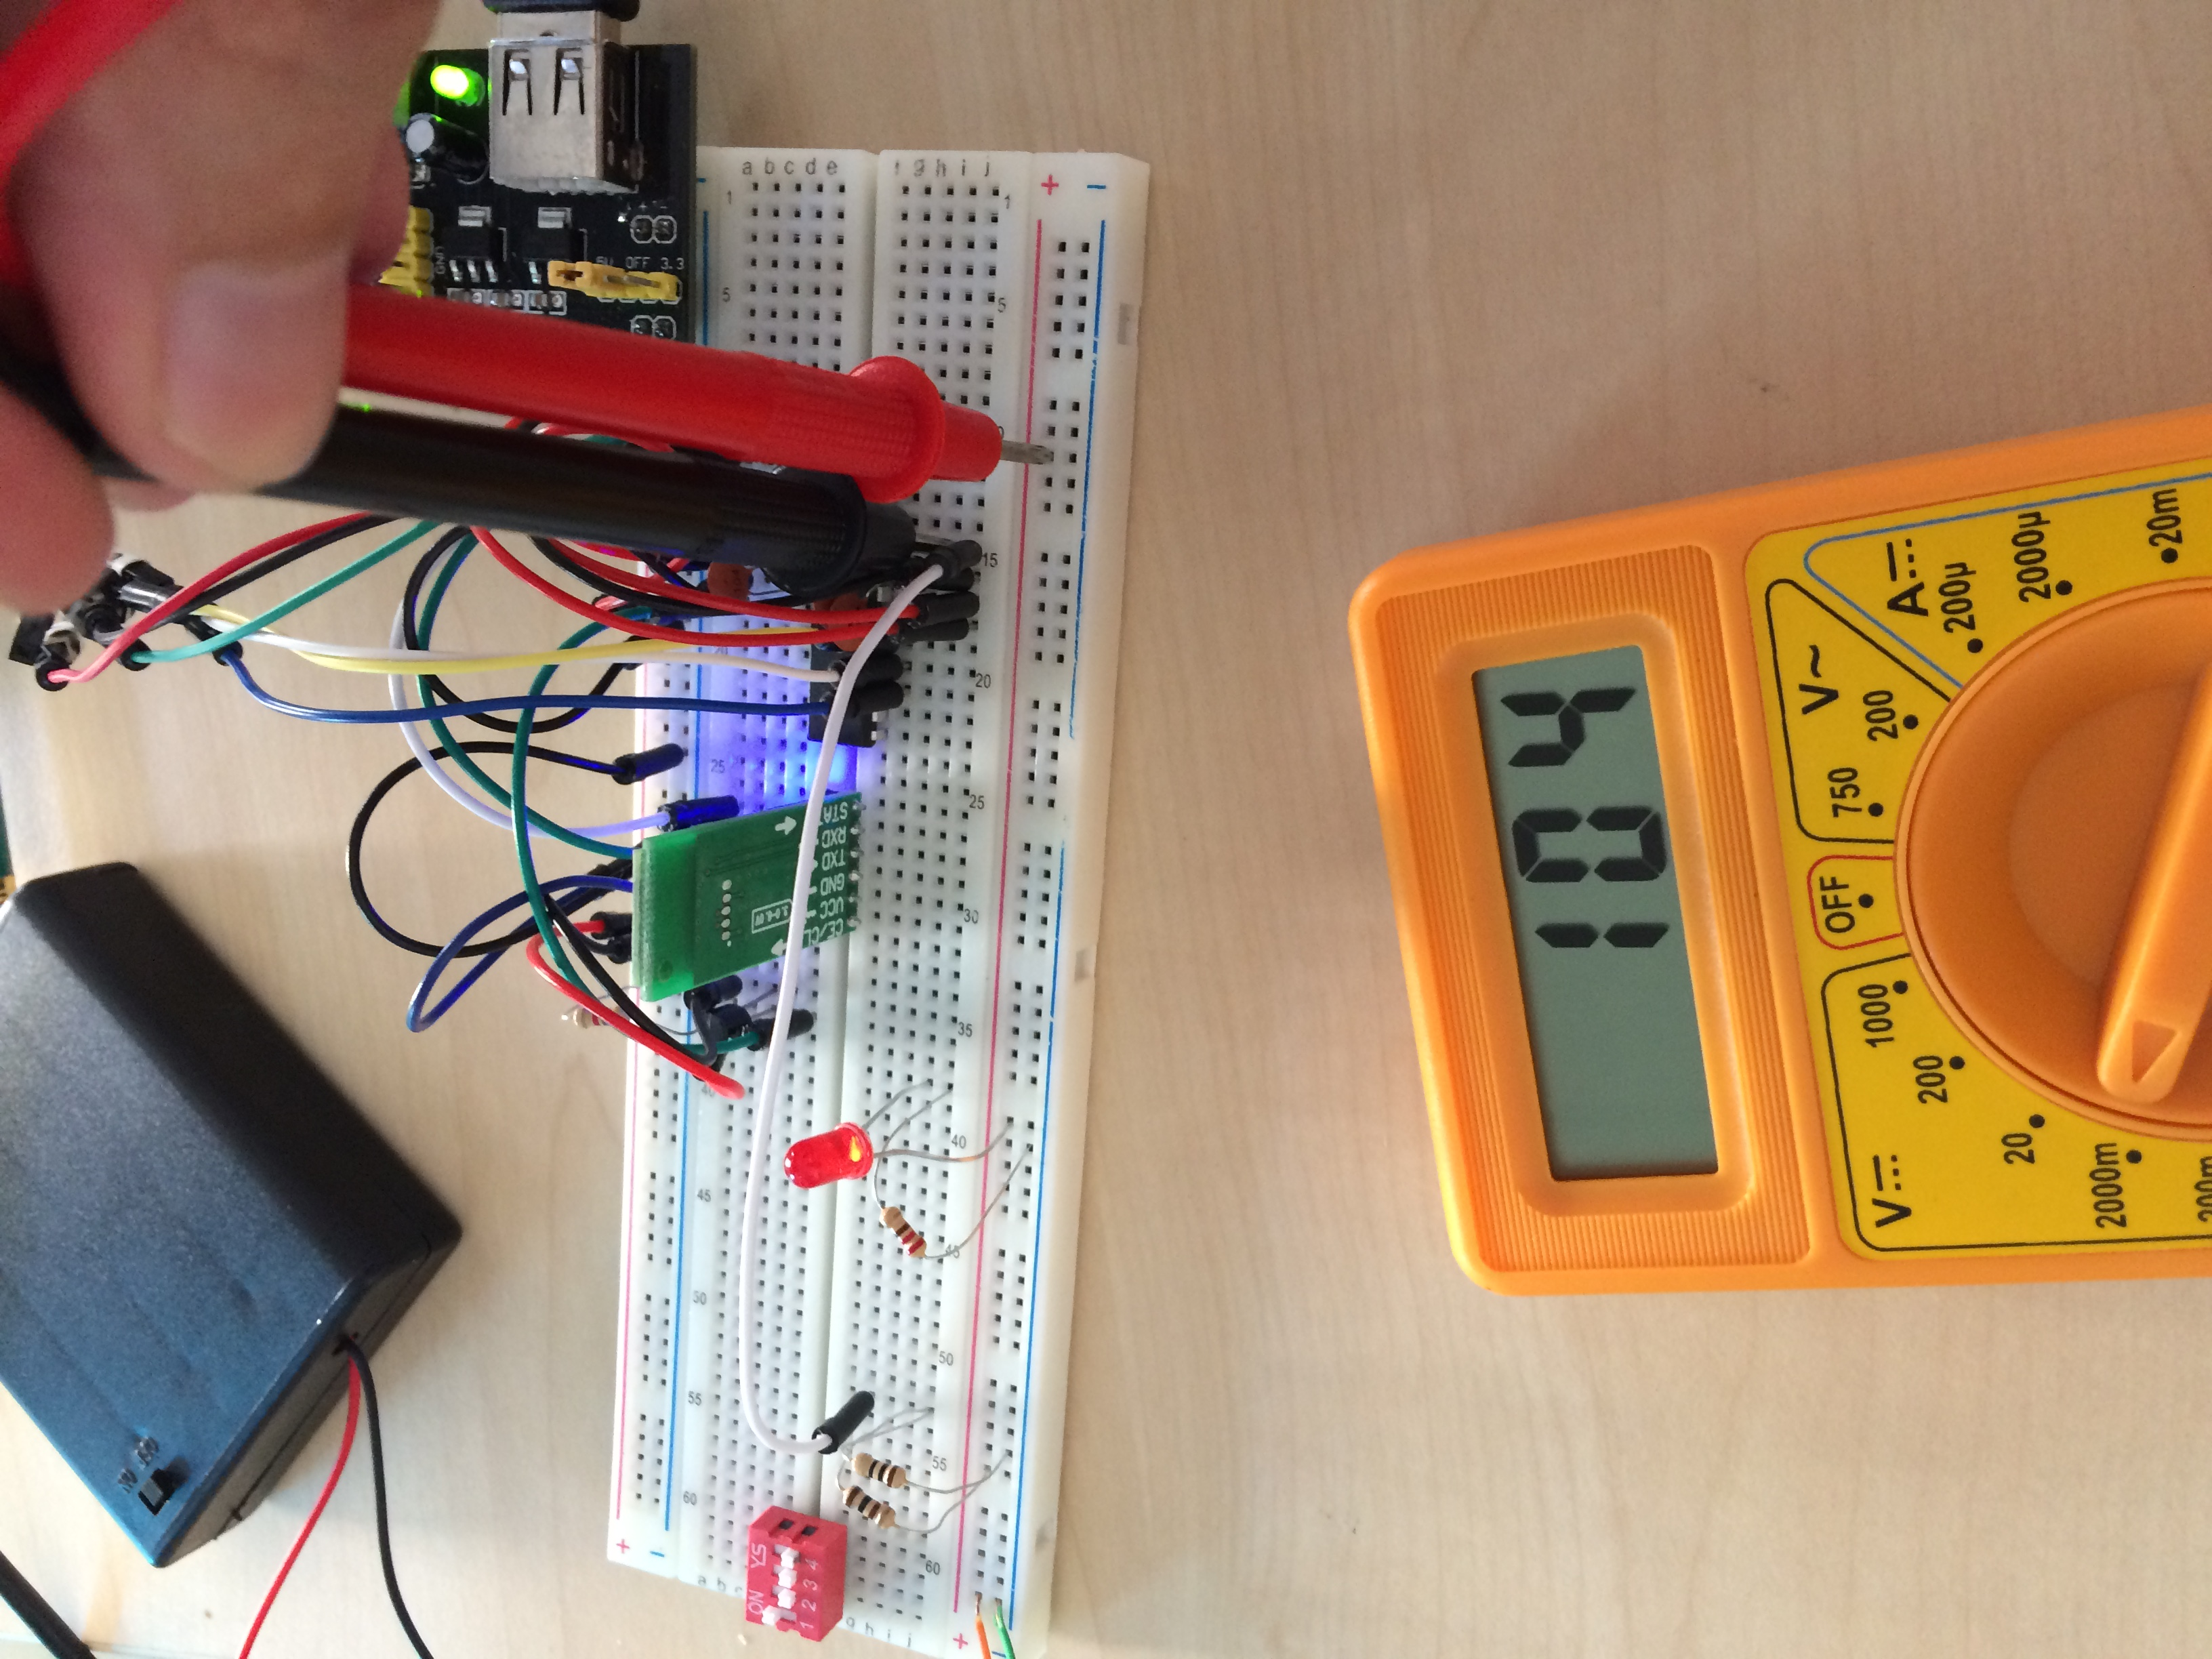 Measure Voltage Coming From Solar Panel With Avr Freaks Divider To Step Down Say A 12v Power Supply 5v